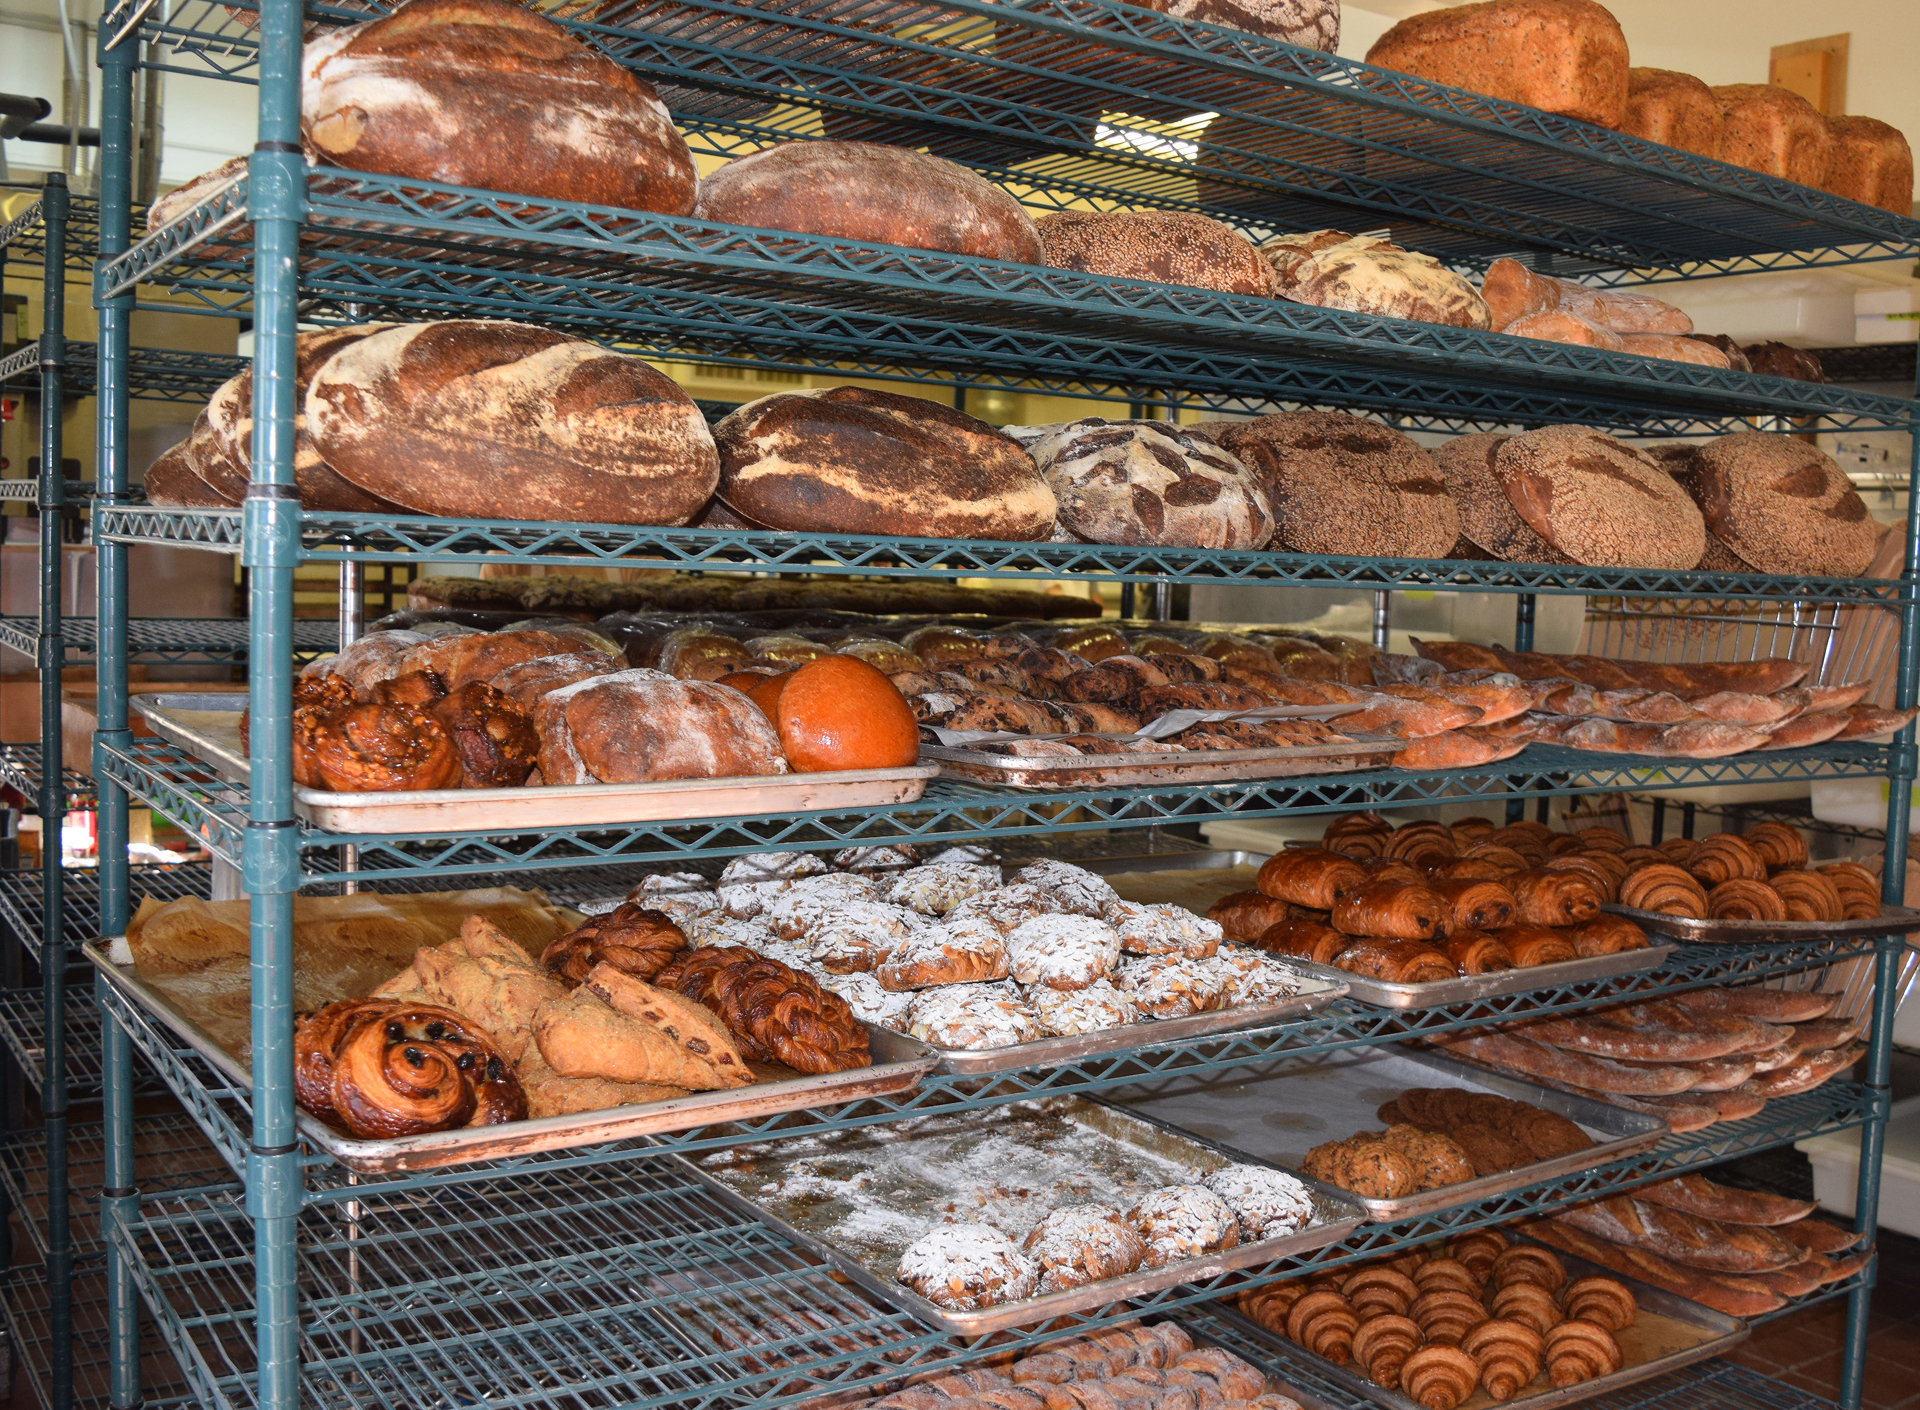 Shelves of breads and pastries inside the bakery door await morning customers.